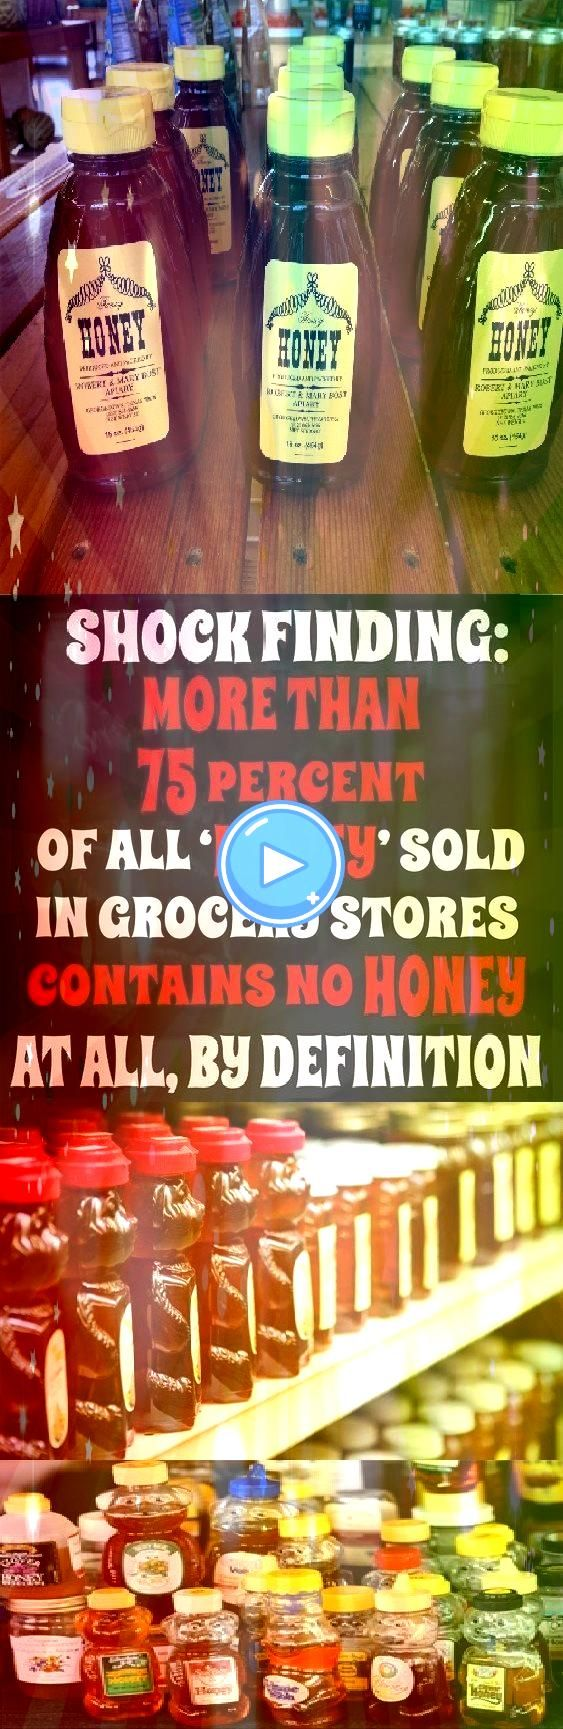 #offinding #finding #grocery #fitness #percent #coshock #stores #shock #honey #more #than #sold #die...